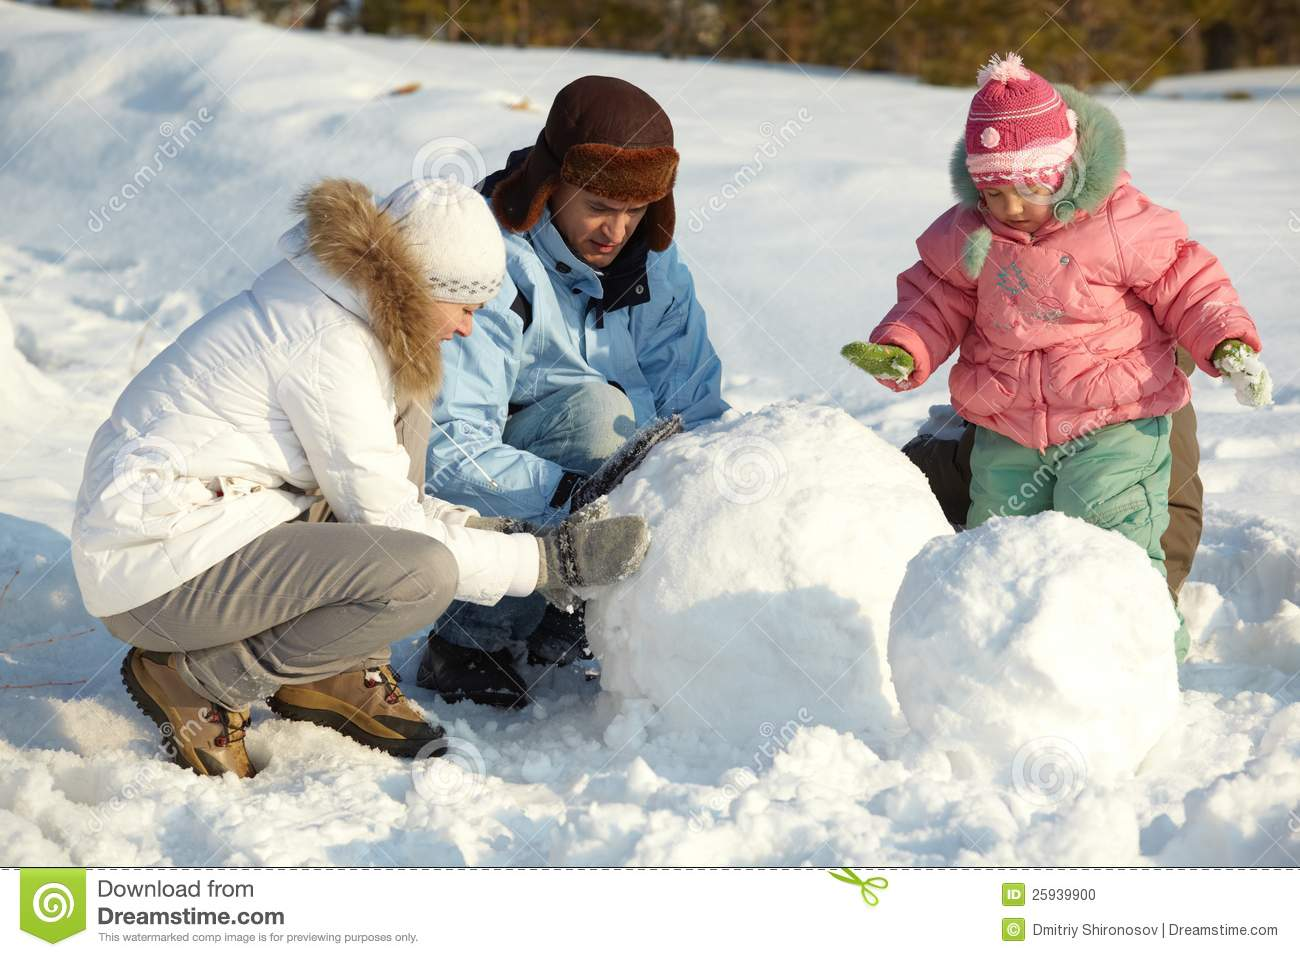 Making Snowman Stock Photo - Image: 25939900